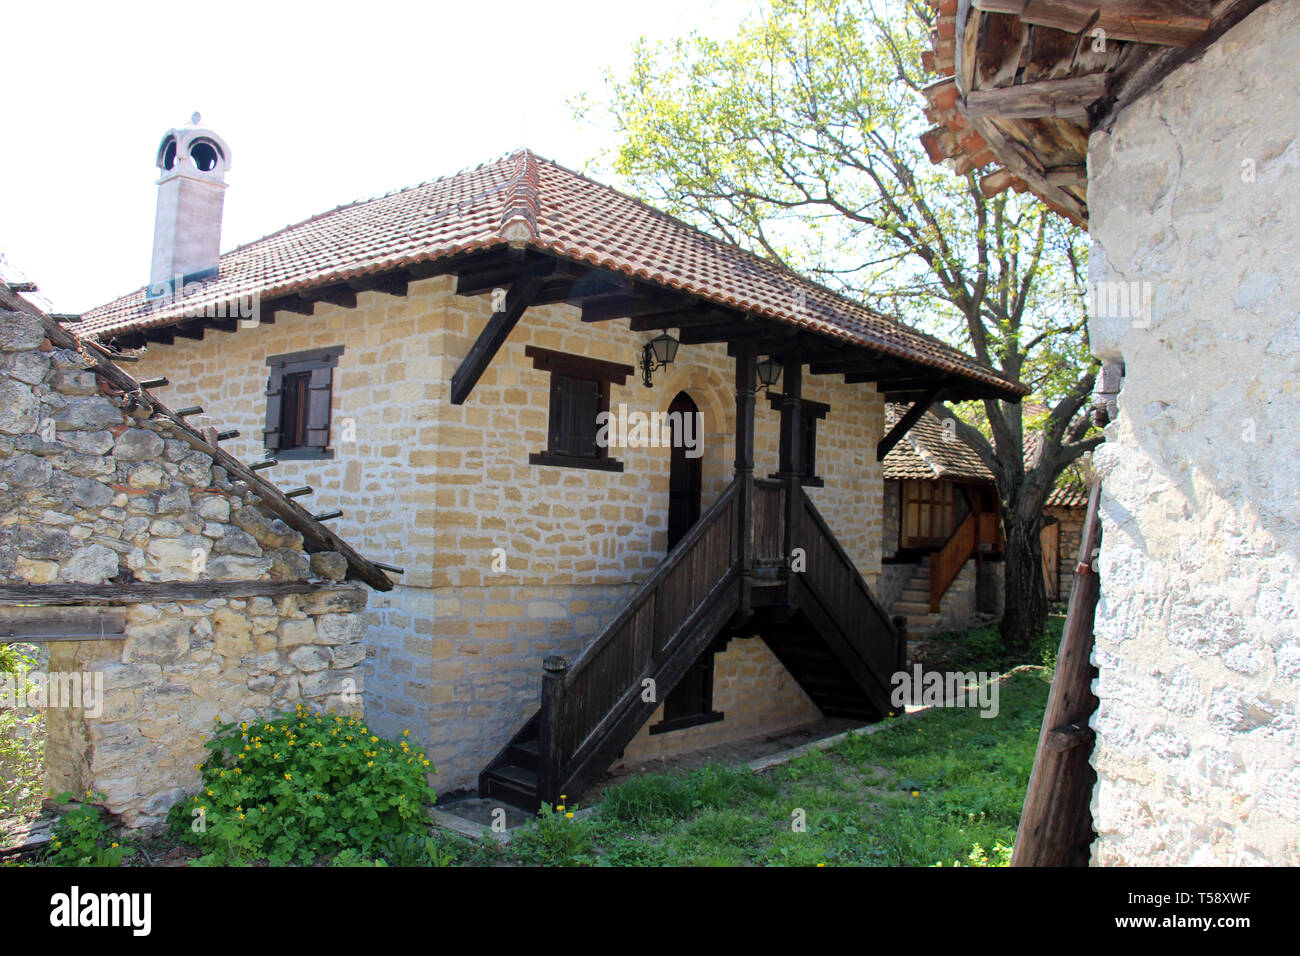 Ancient house made of stone used for storing wine - Stock Image